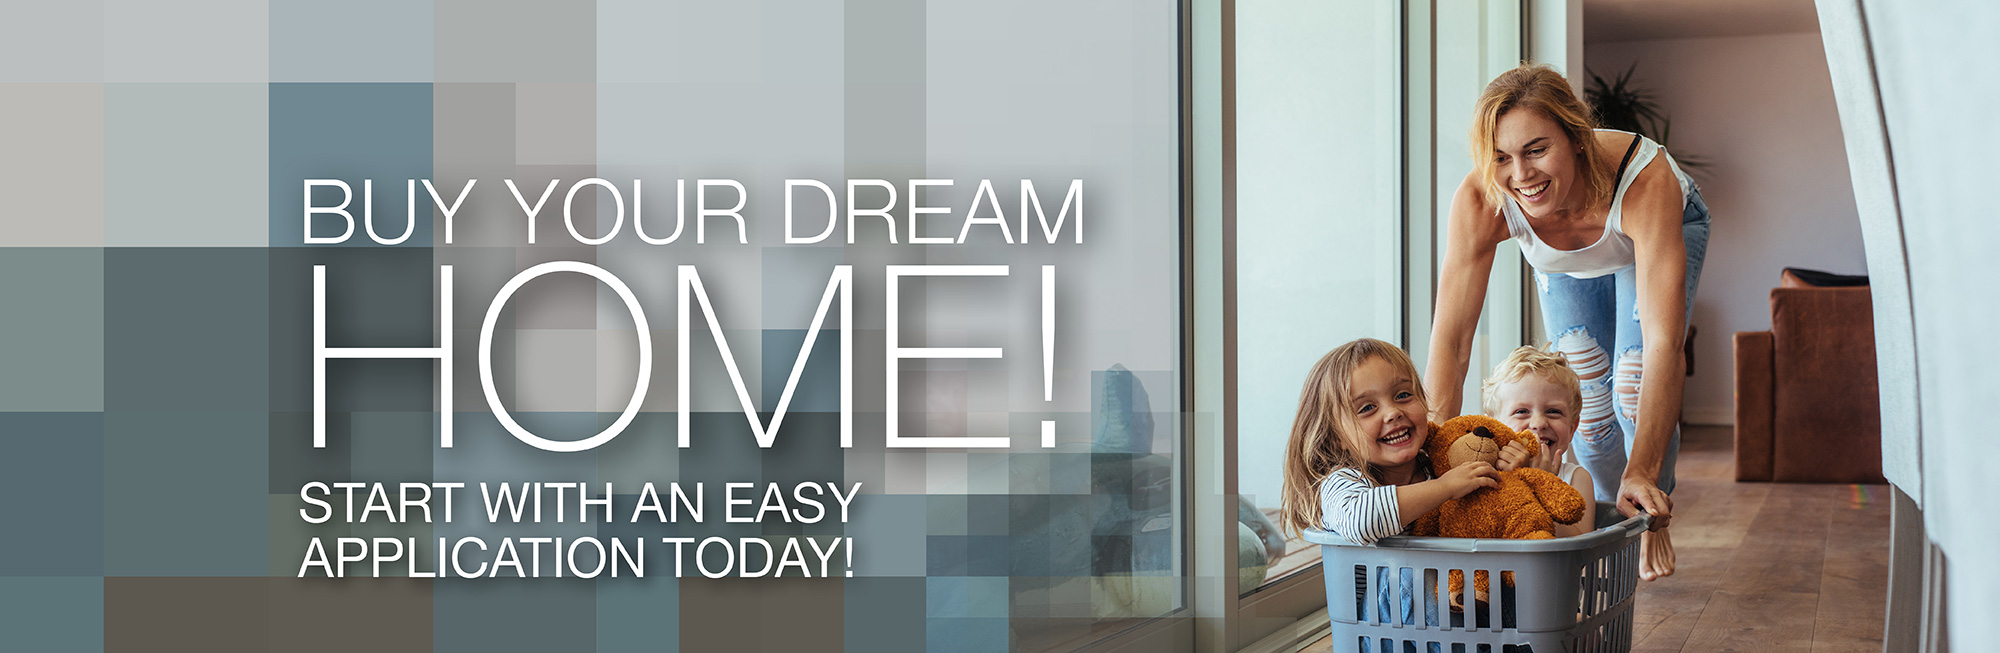 Buy your dream home! Start with an easy application today!